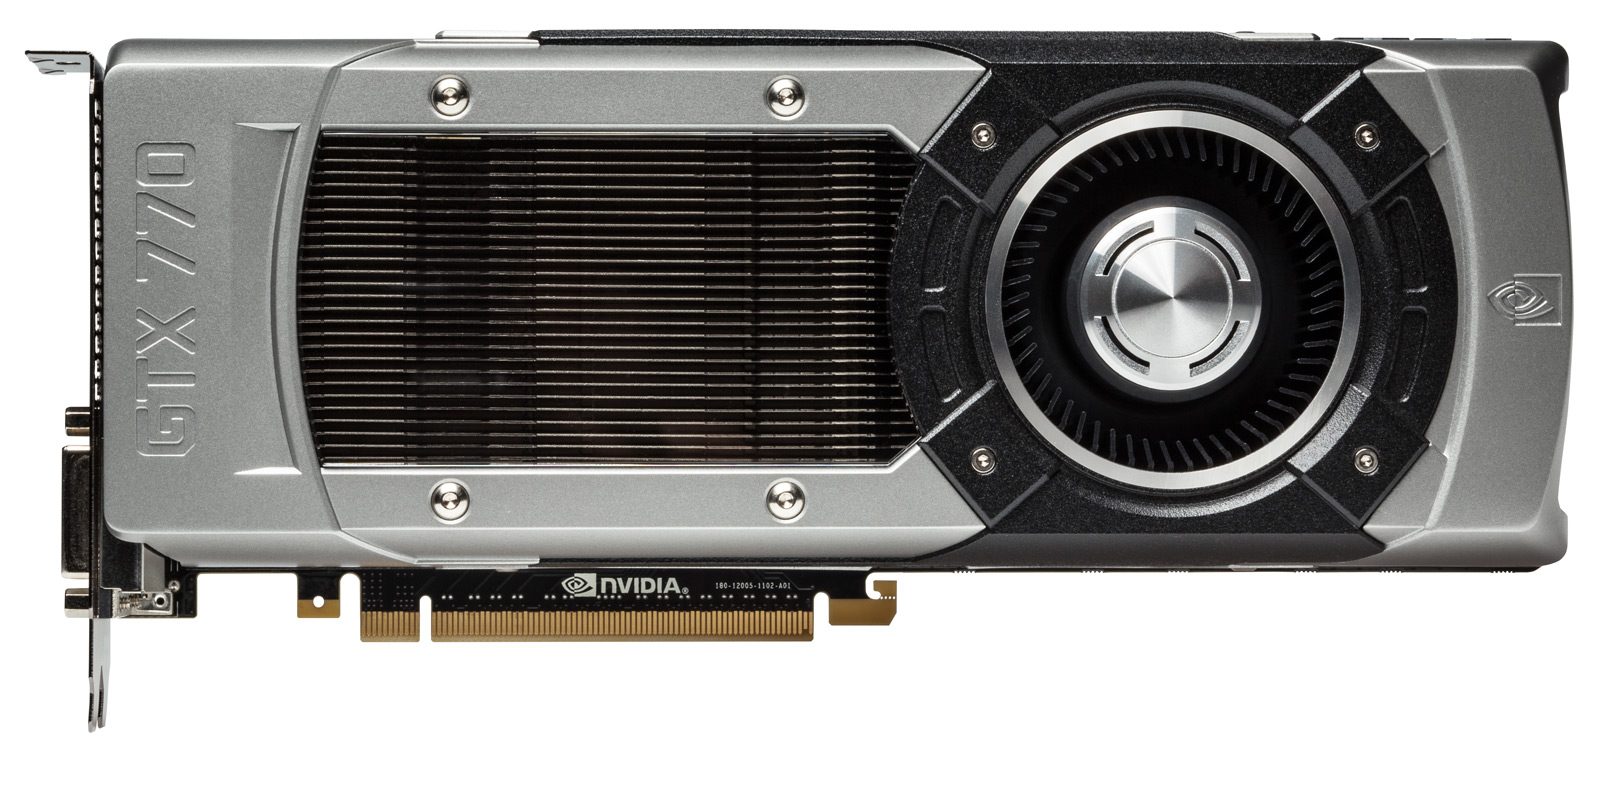 Nvidia Geforce Gtx770